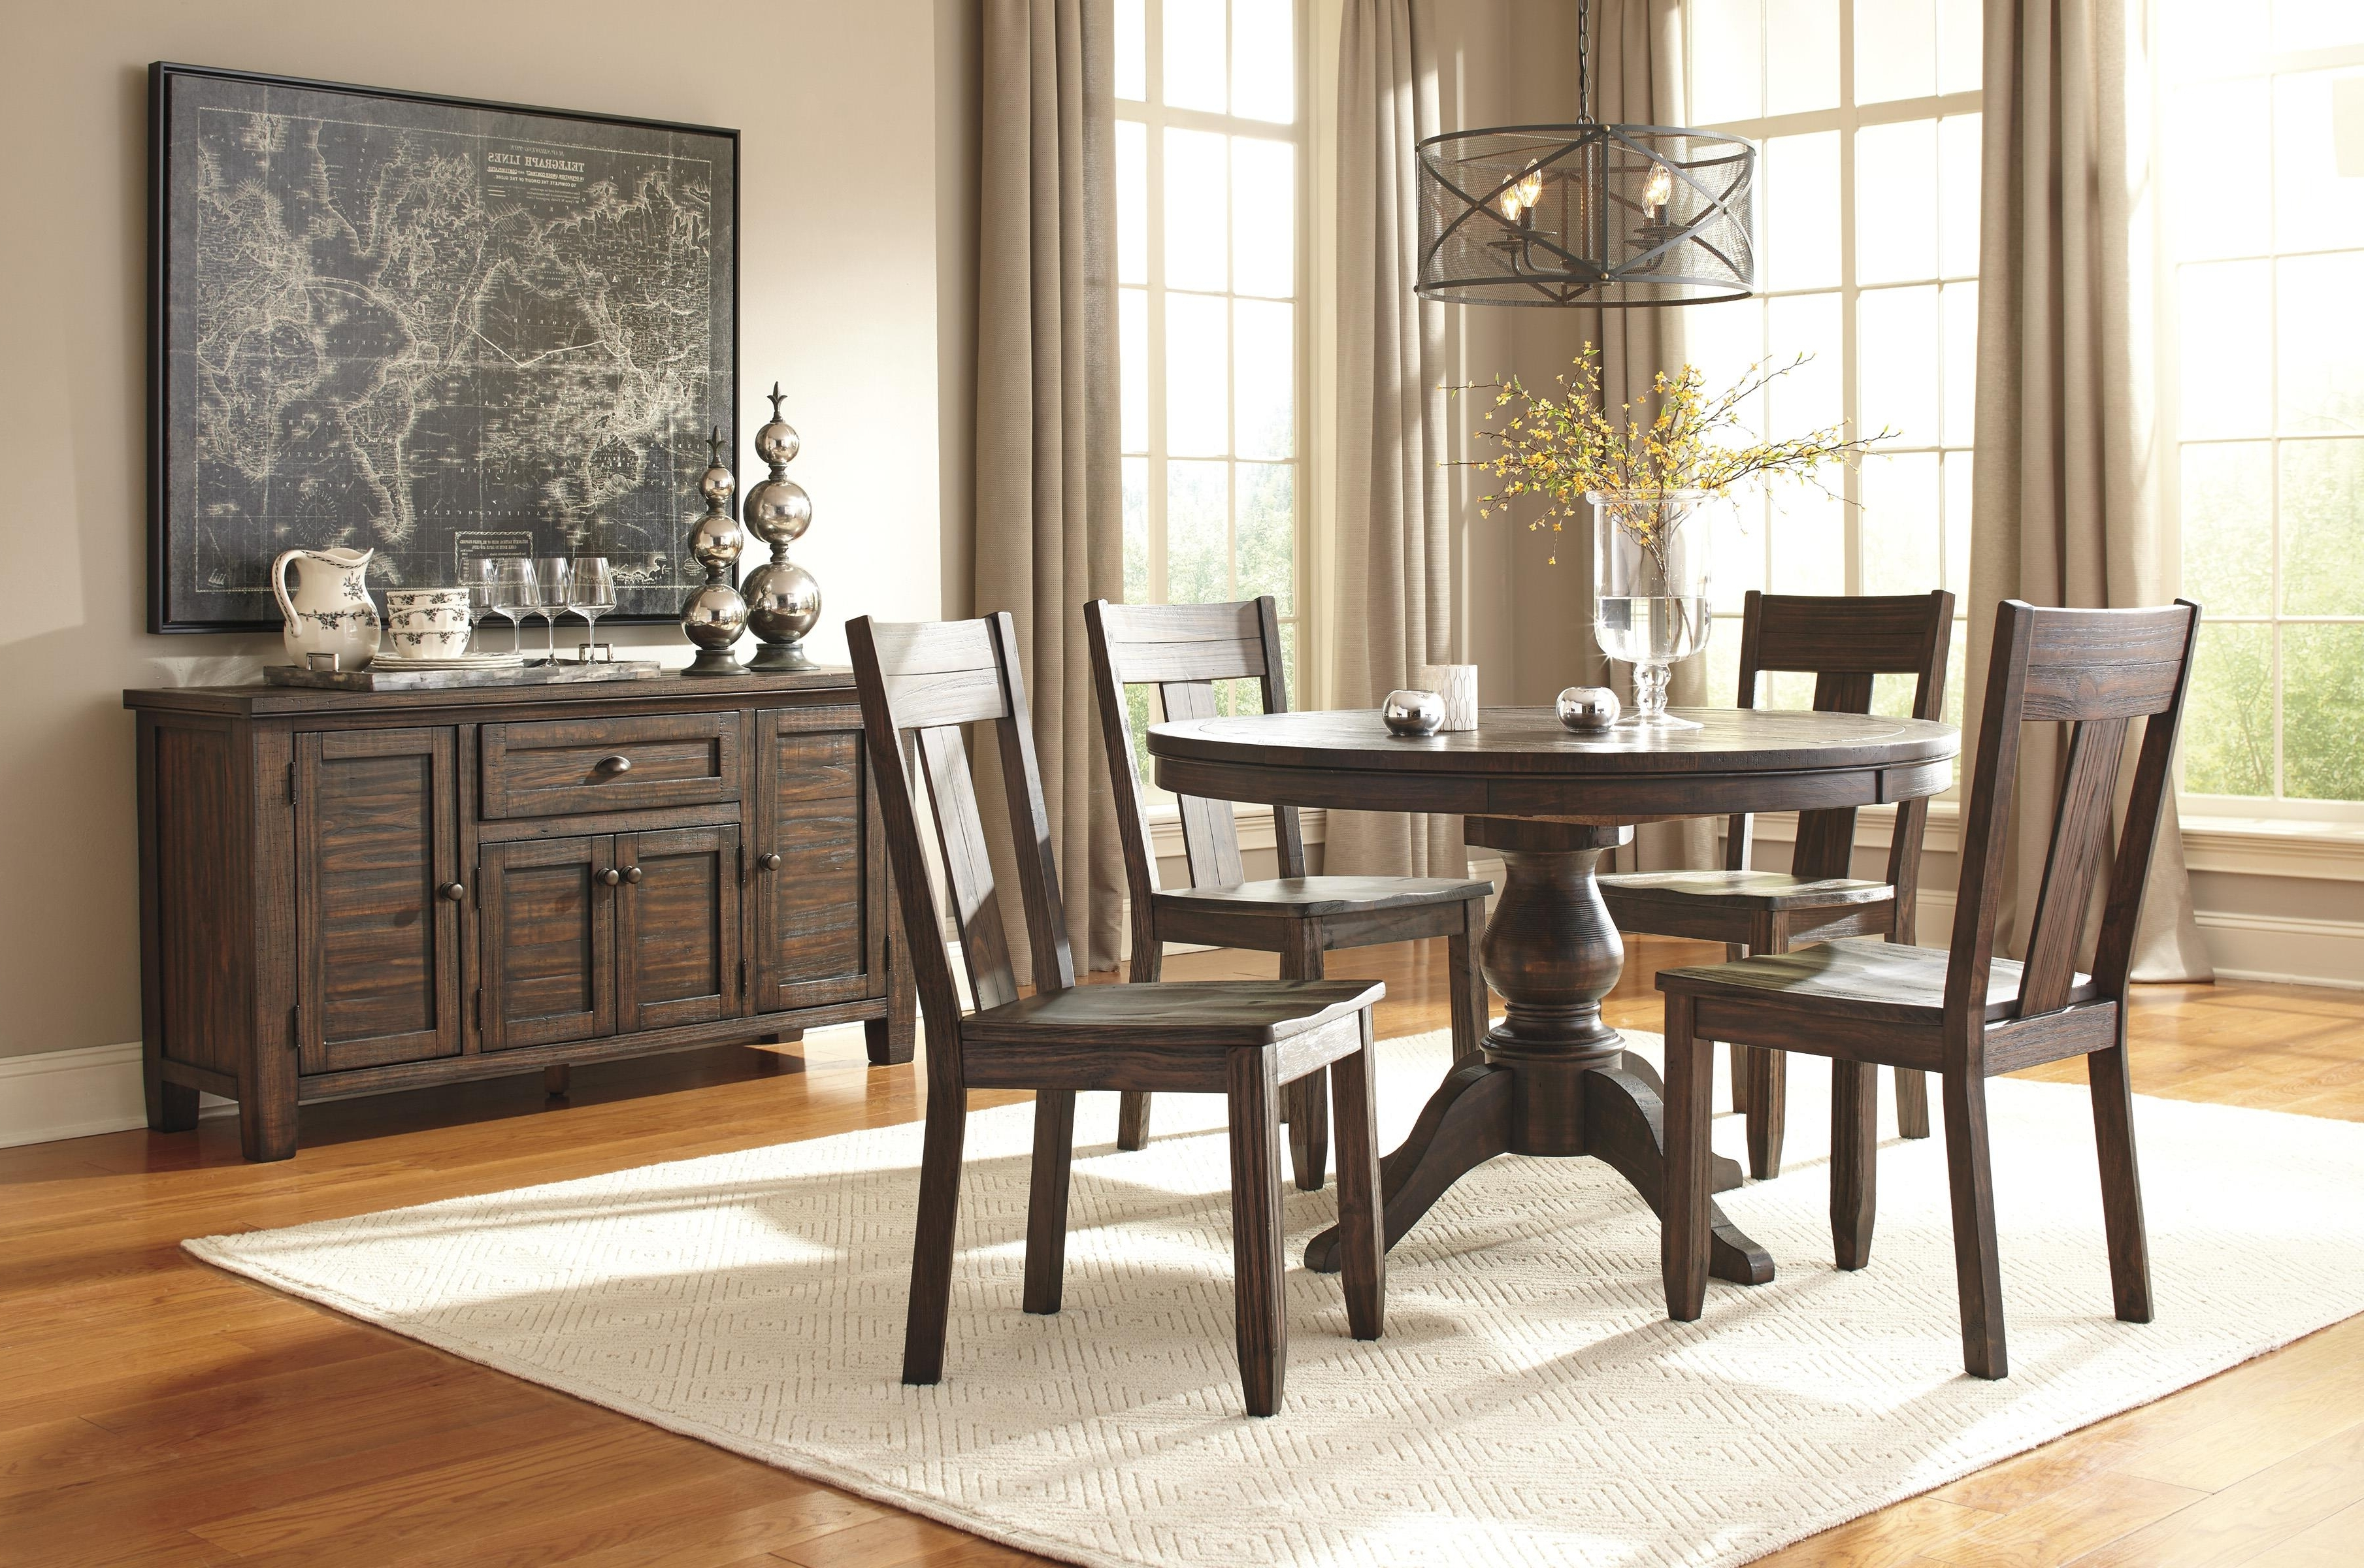 2018 Jaxon 5 Piece Round Dining Sets With Upholstered Chairs in Signature Designashley Trudell 5-Piece Round Dining Table Set